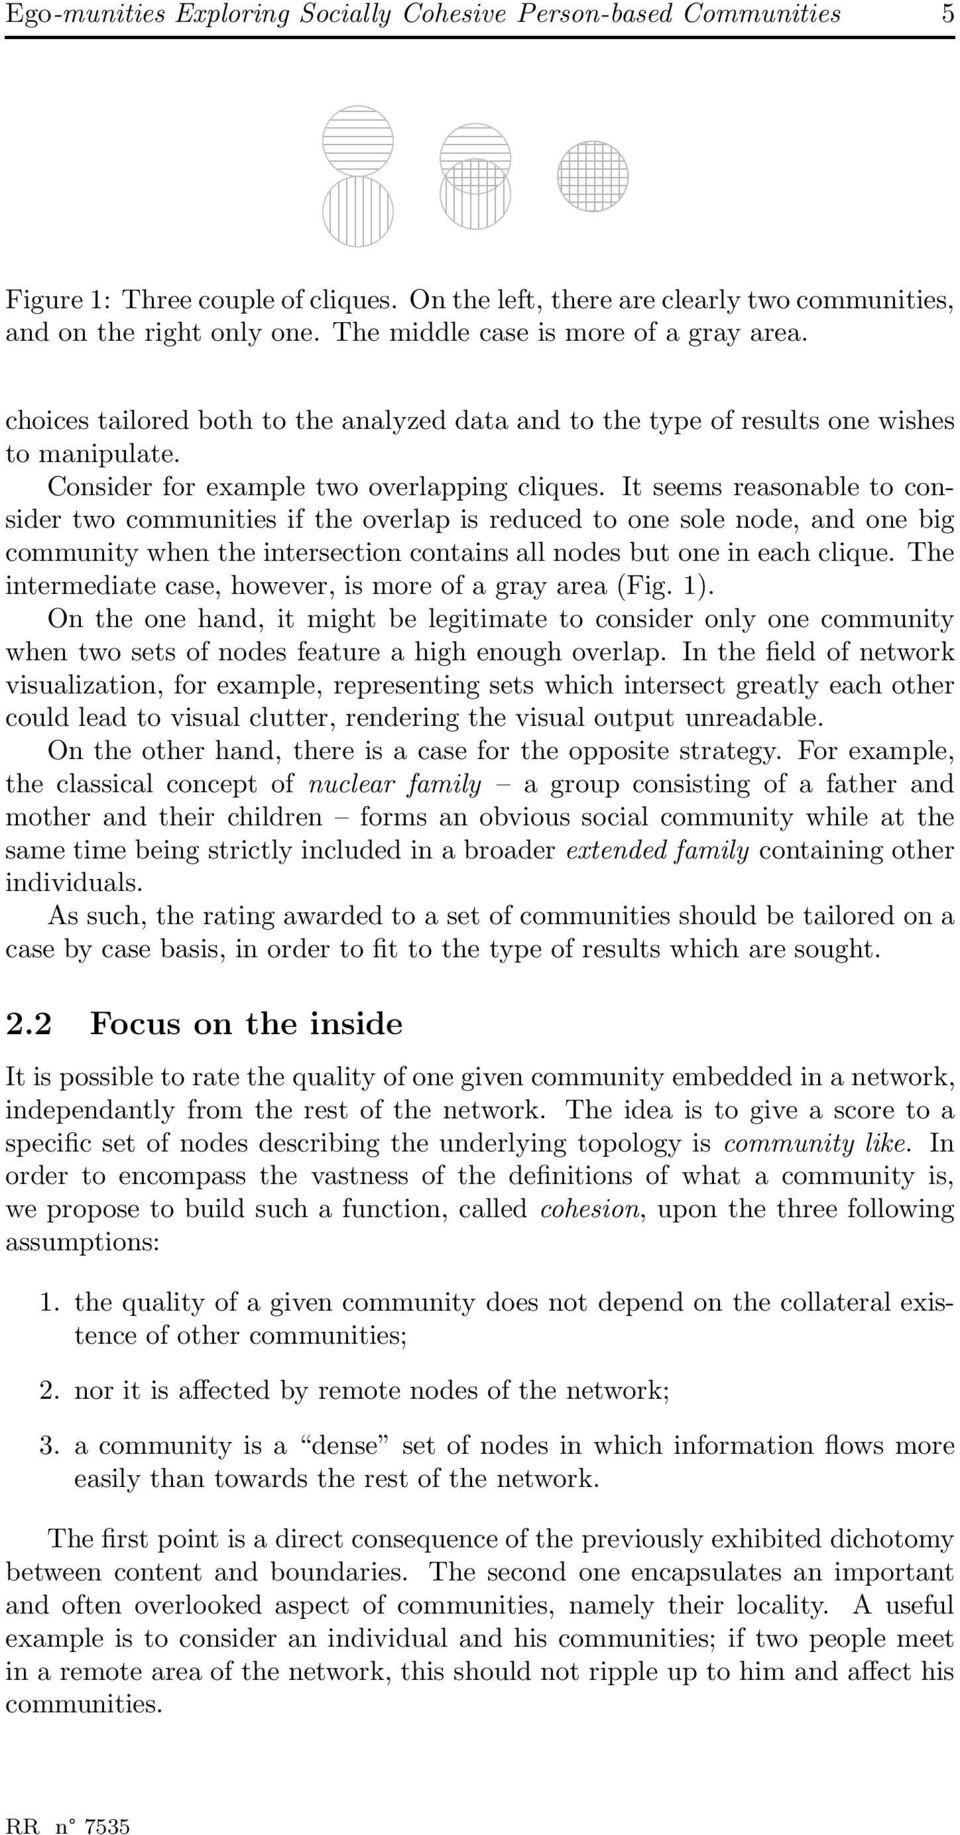 It seems reasonable to consider two communities if the overlap is reduced to one sole node, and one big community when the intersection contains all nodes but one in each clique.